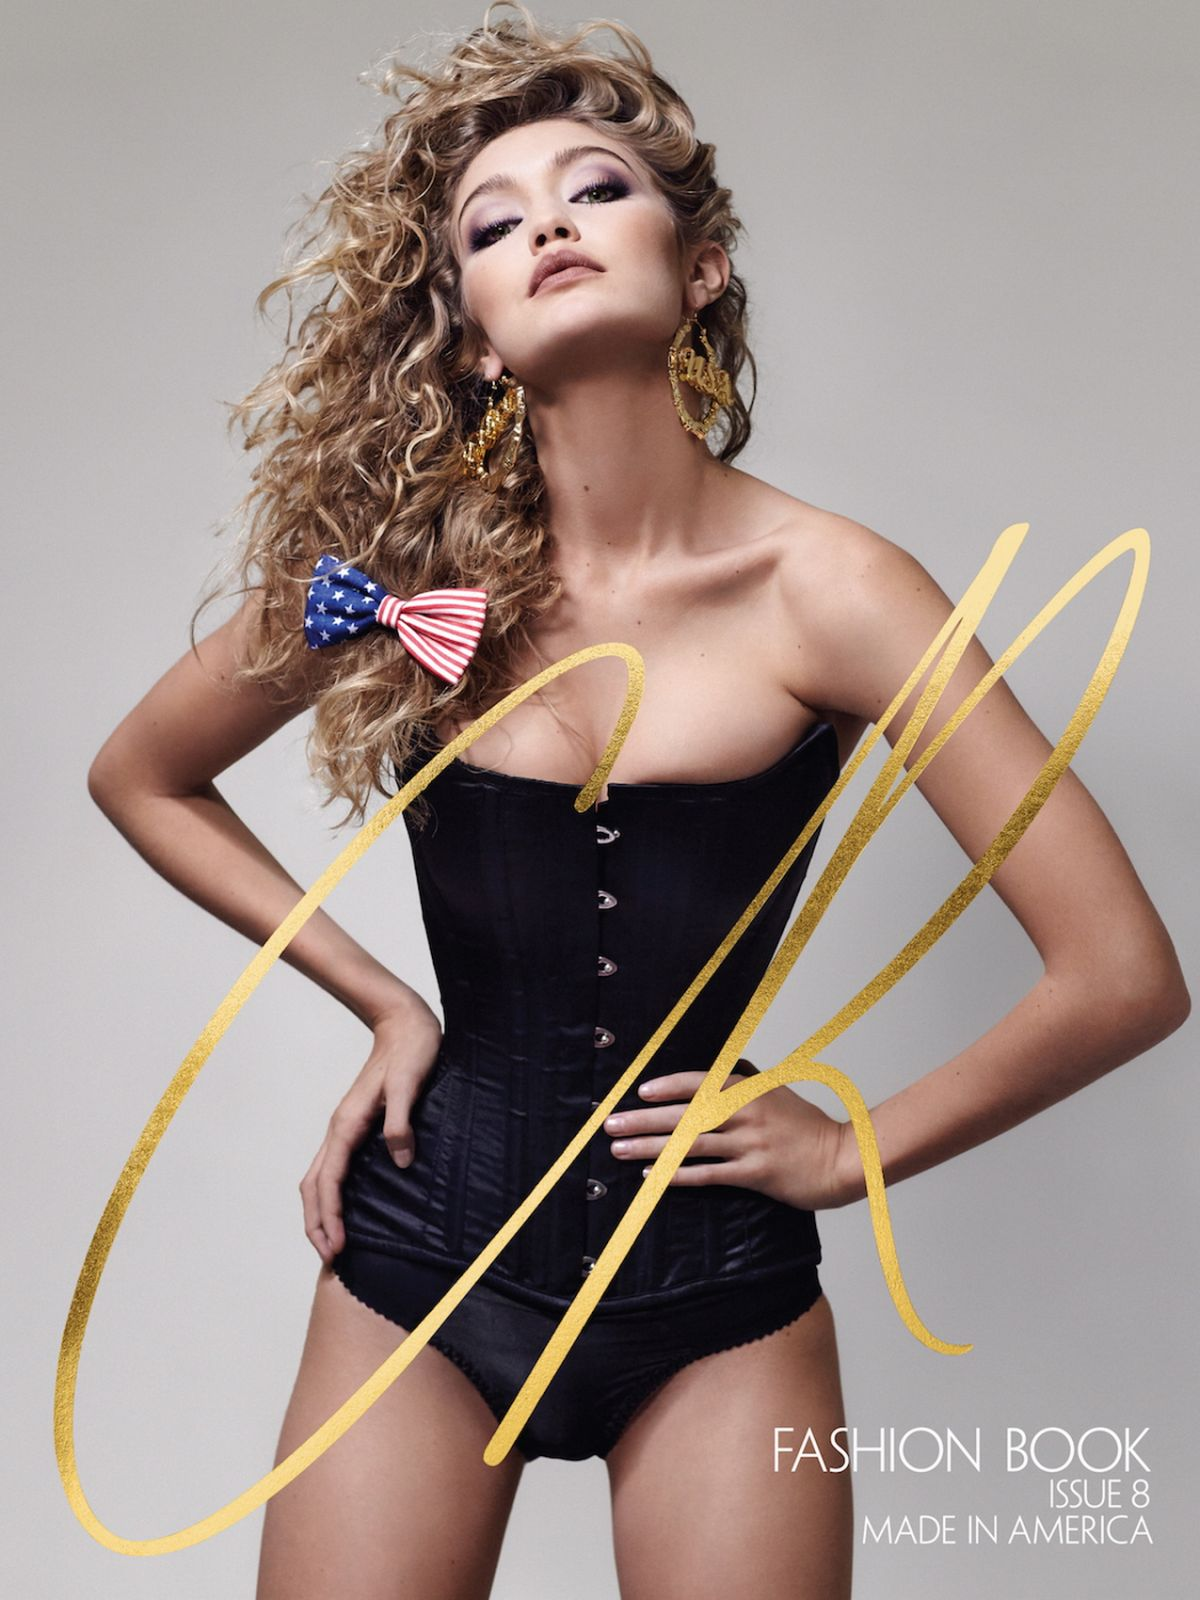 GIGI HADID by Sebastian Faena for CR Fashion Book No. 8